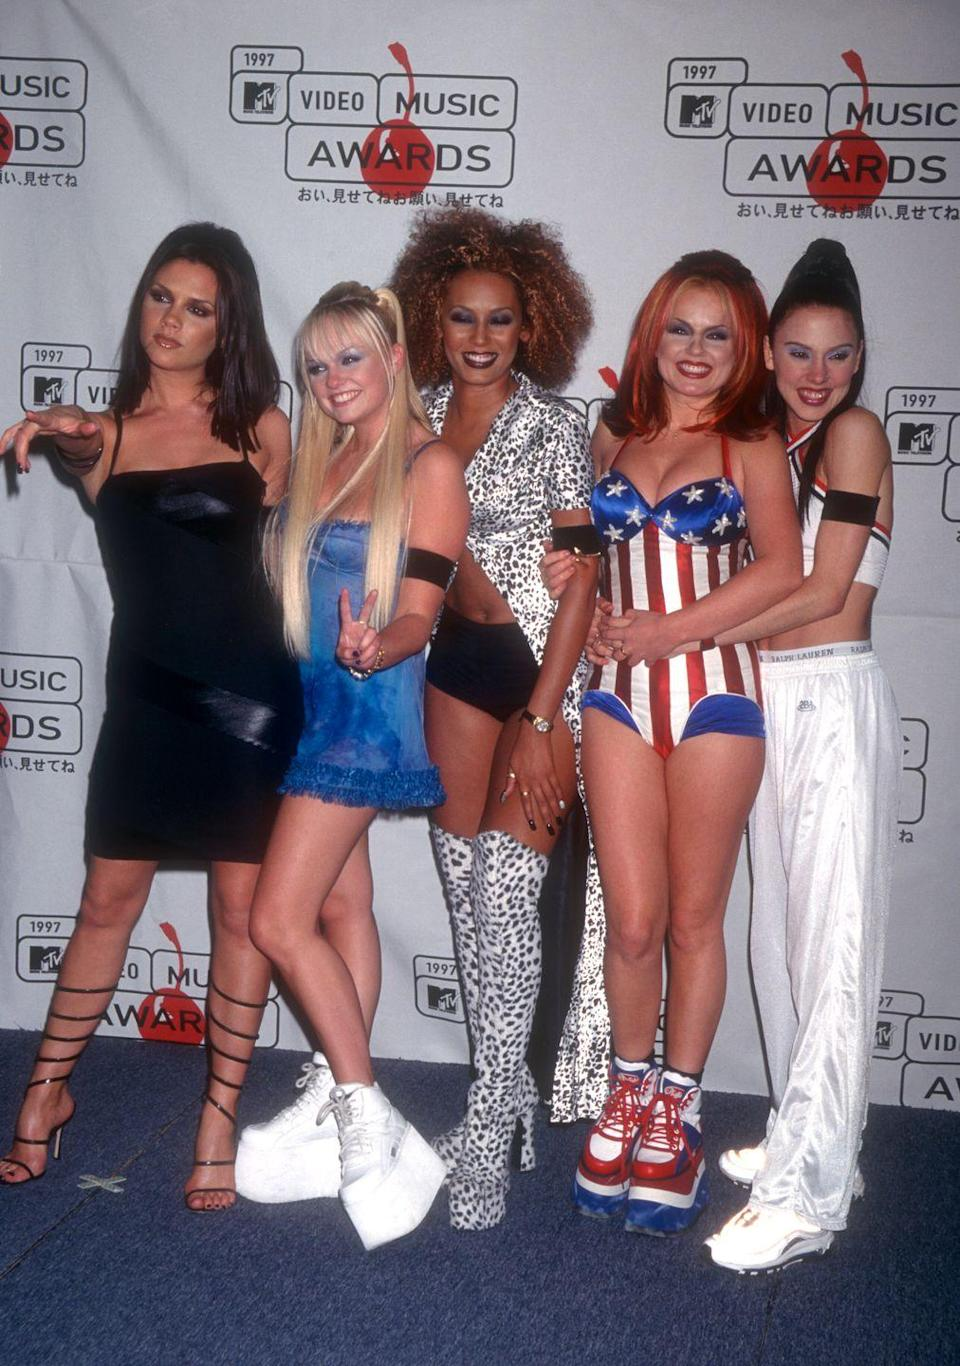 <p>Each of the five Spice Girls wore something unique to the 1997 VMAs: Posh wore a black bodycon dress with spiral heels, Baby wore a blue minidress with platform sneakers, Scary wore short shorts with dalmatian-print thigh-high boots and a matching duster blouse, Ginger wore an American-flag bodysuit with coordinating platforms, and Sporty wore a high-necked crop top with white track pants and tennis shoes.</p>